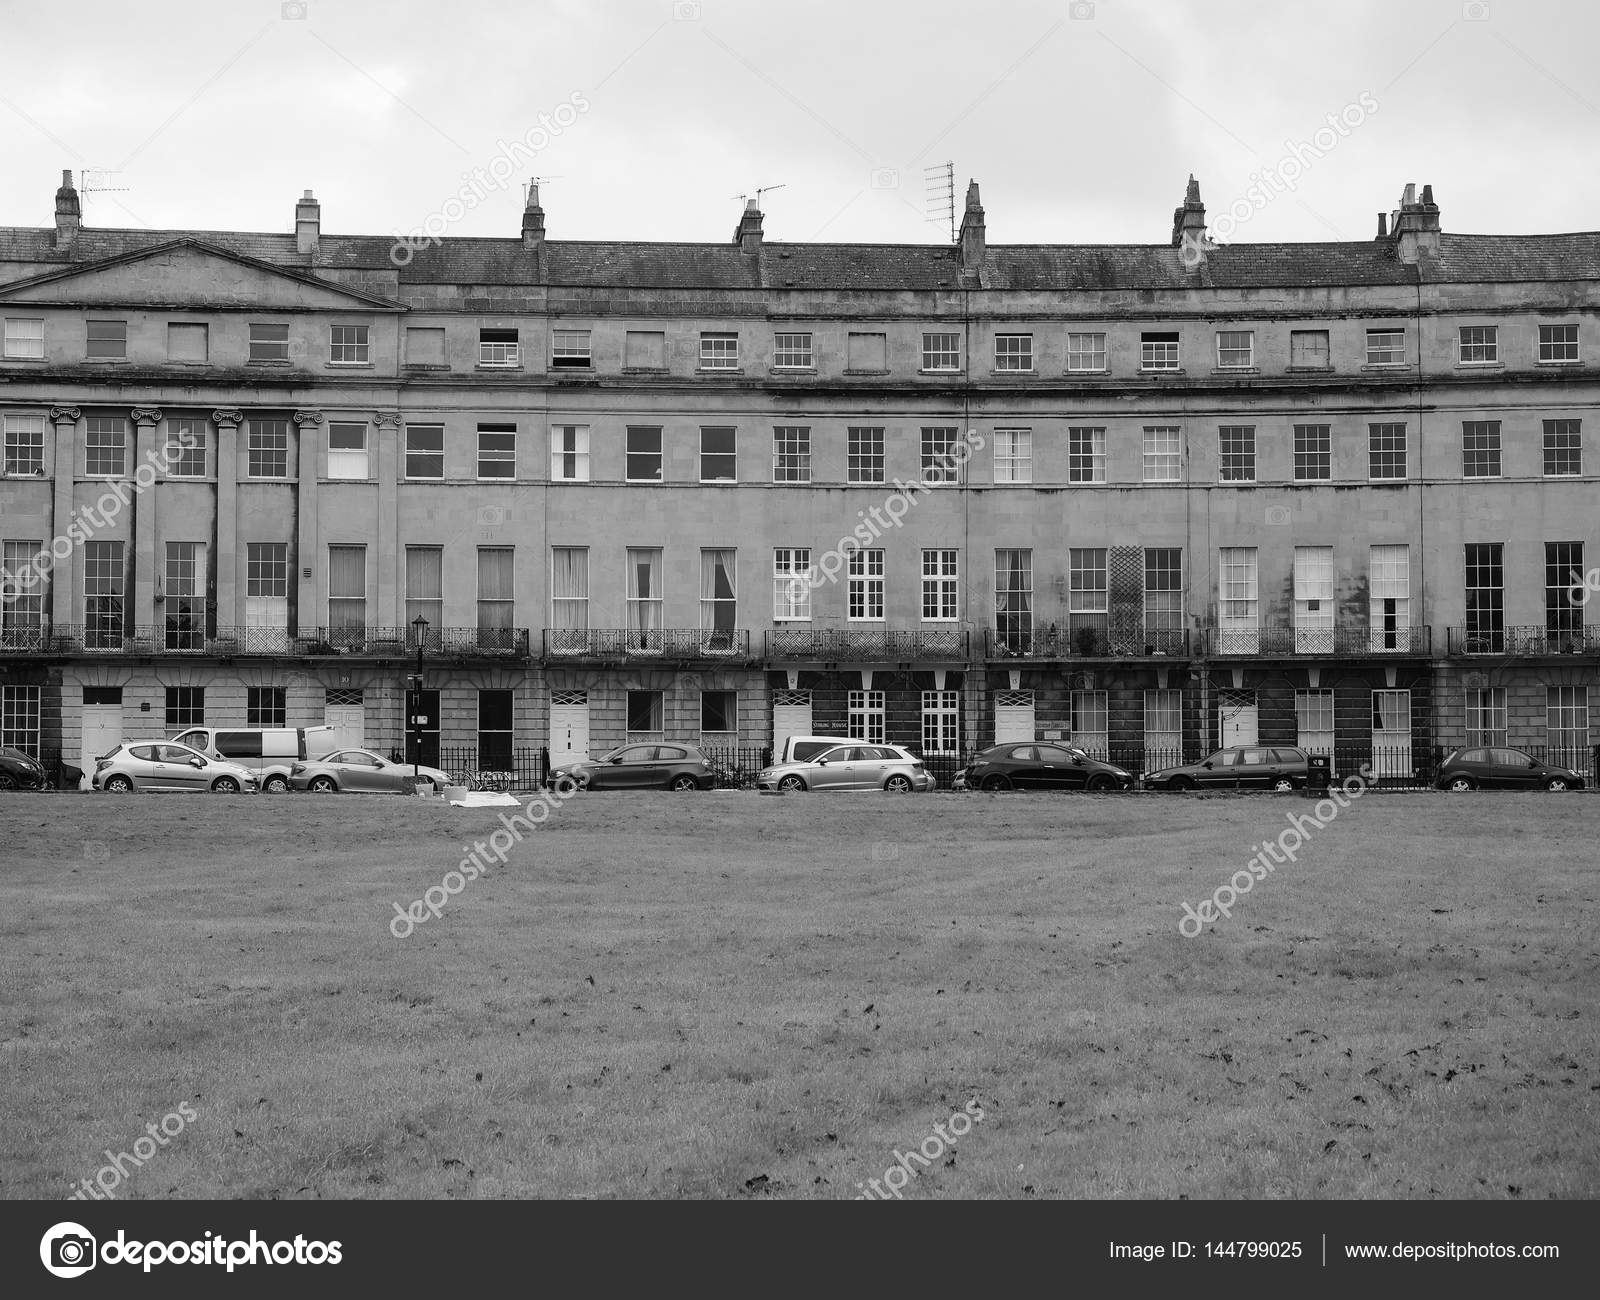 Bath uk circa september 2016 the norfolk crescent row of terraced houses in black and white photo by claudiodivizia